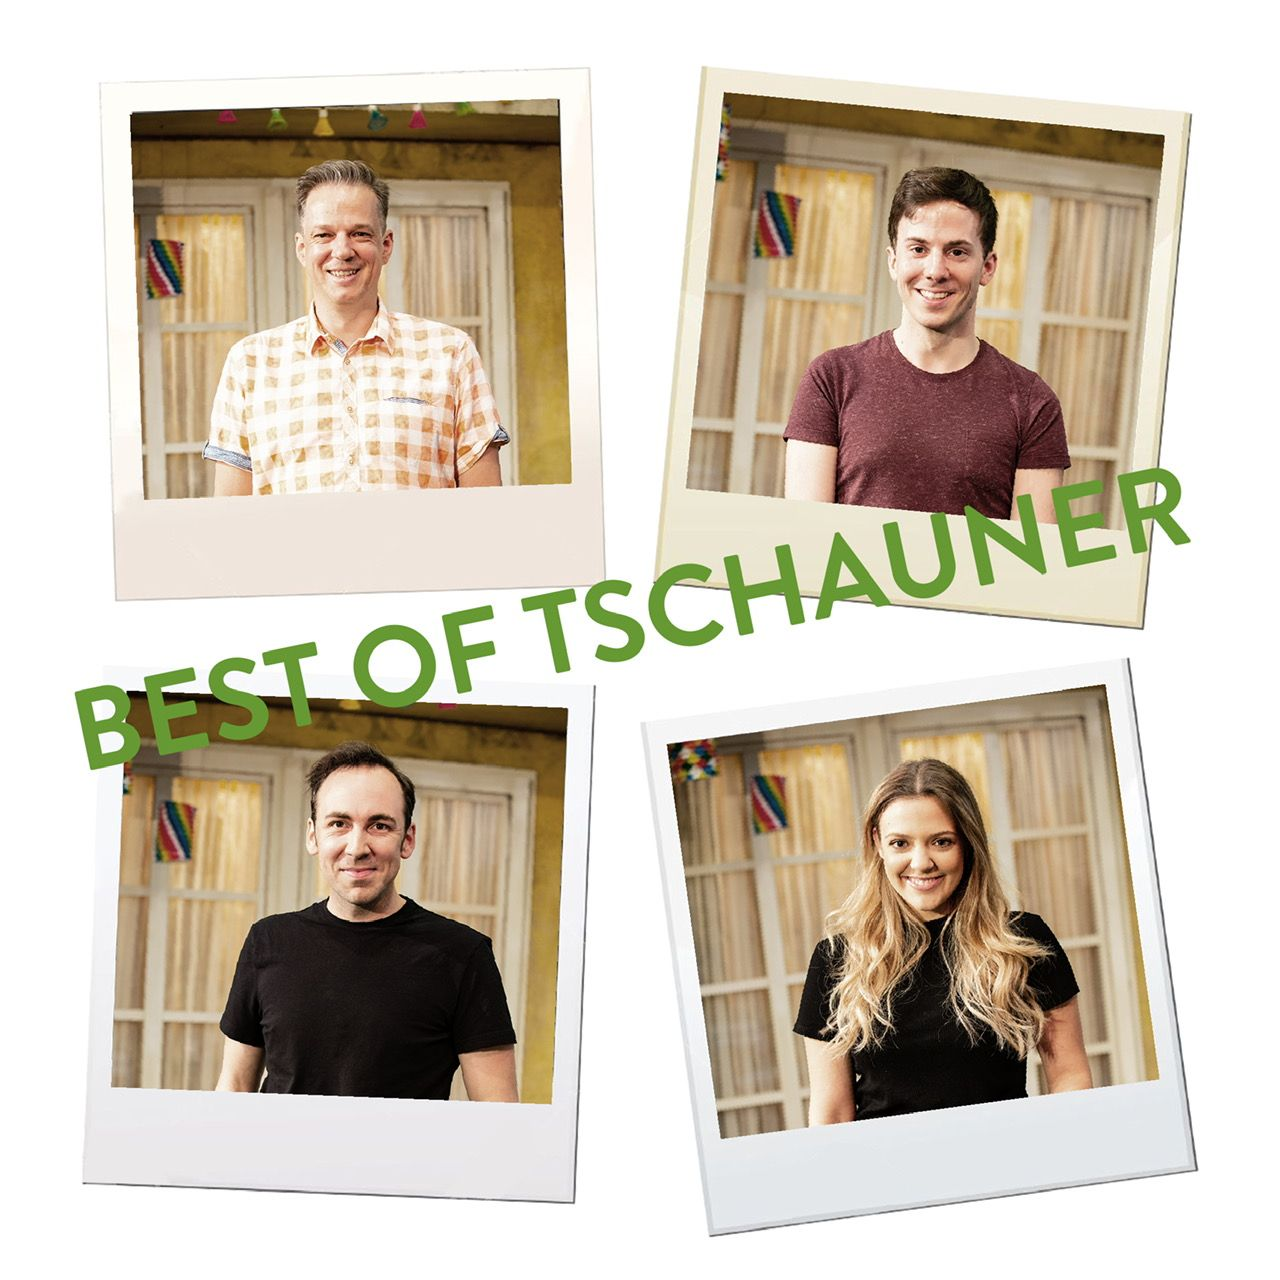 Best of Tschauner